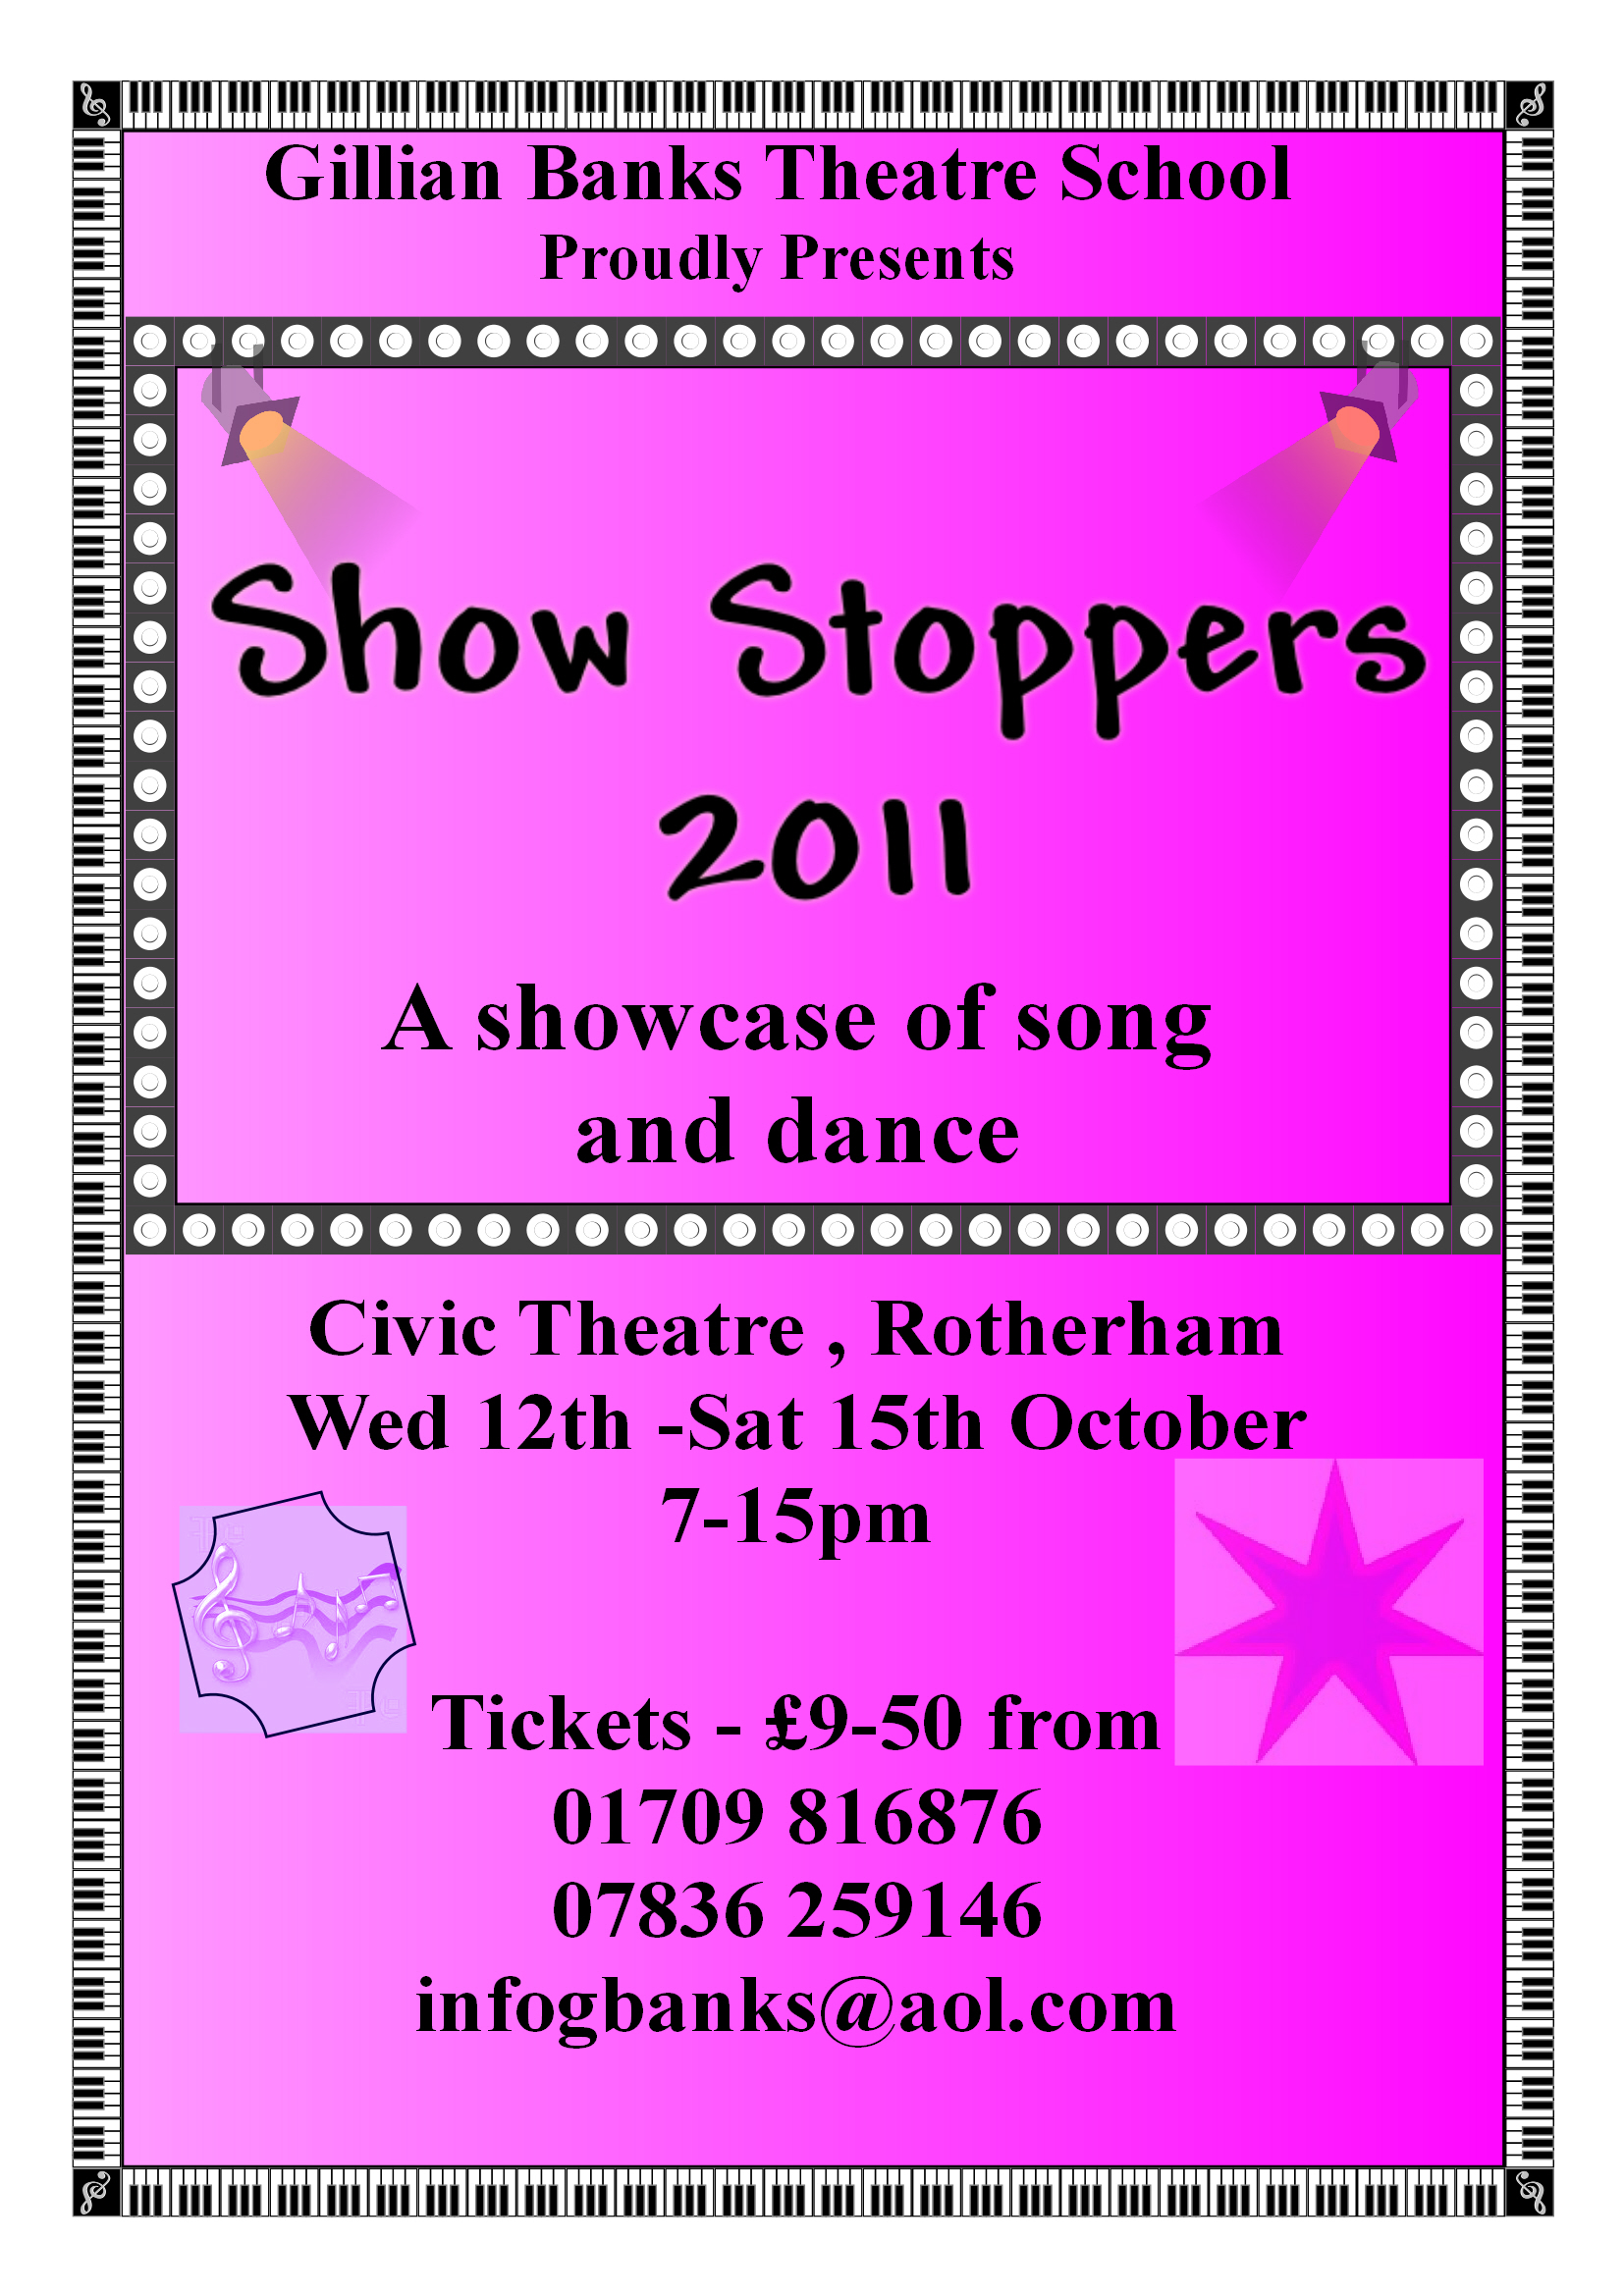 Showstoppers 2011 Poster